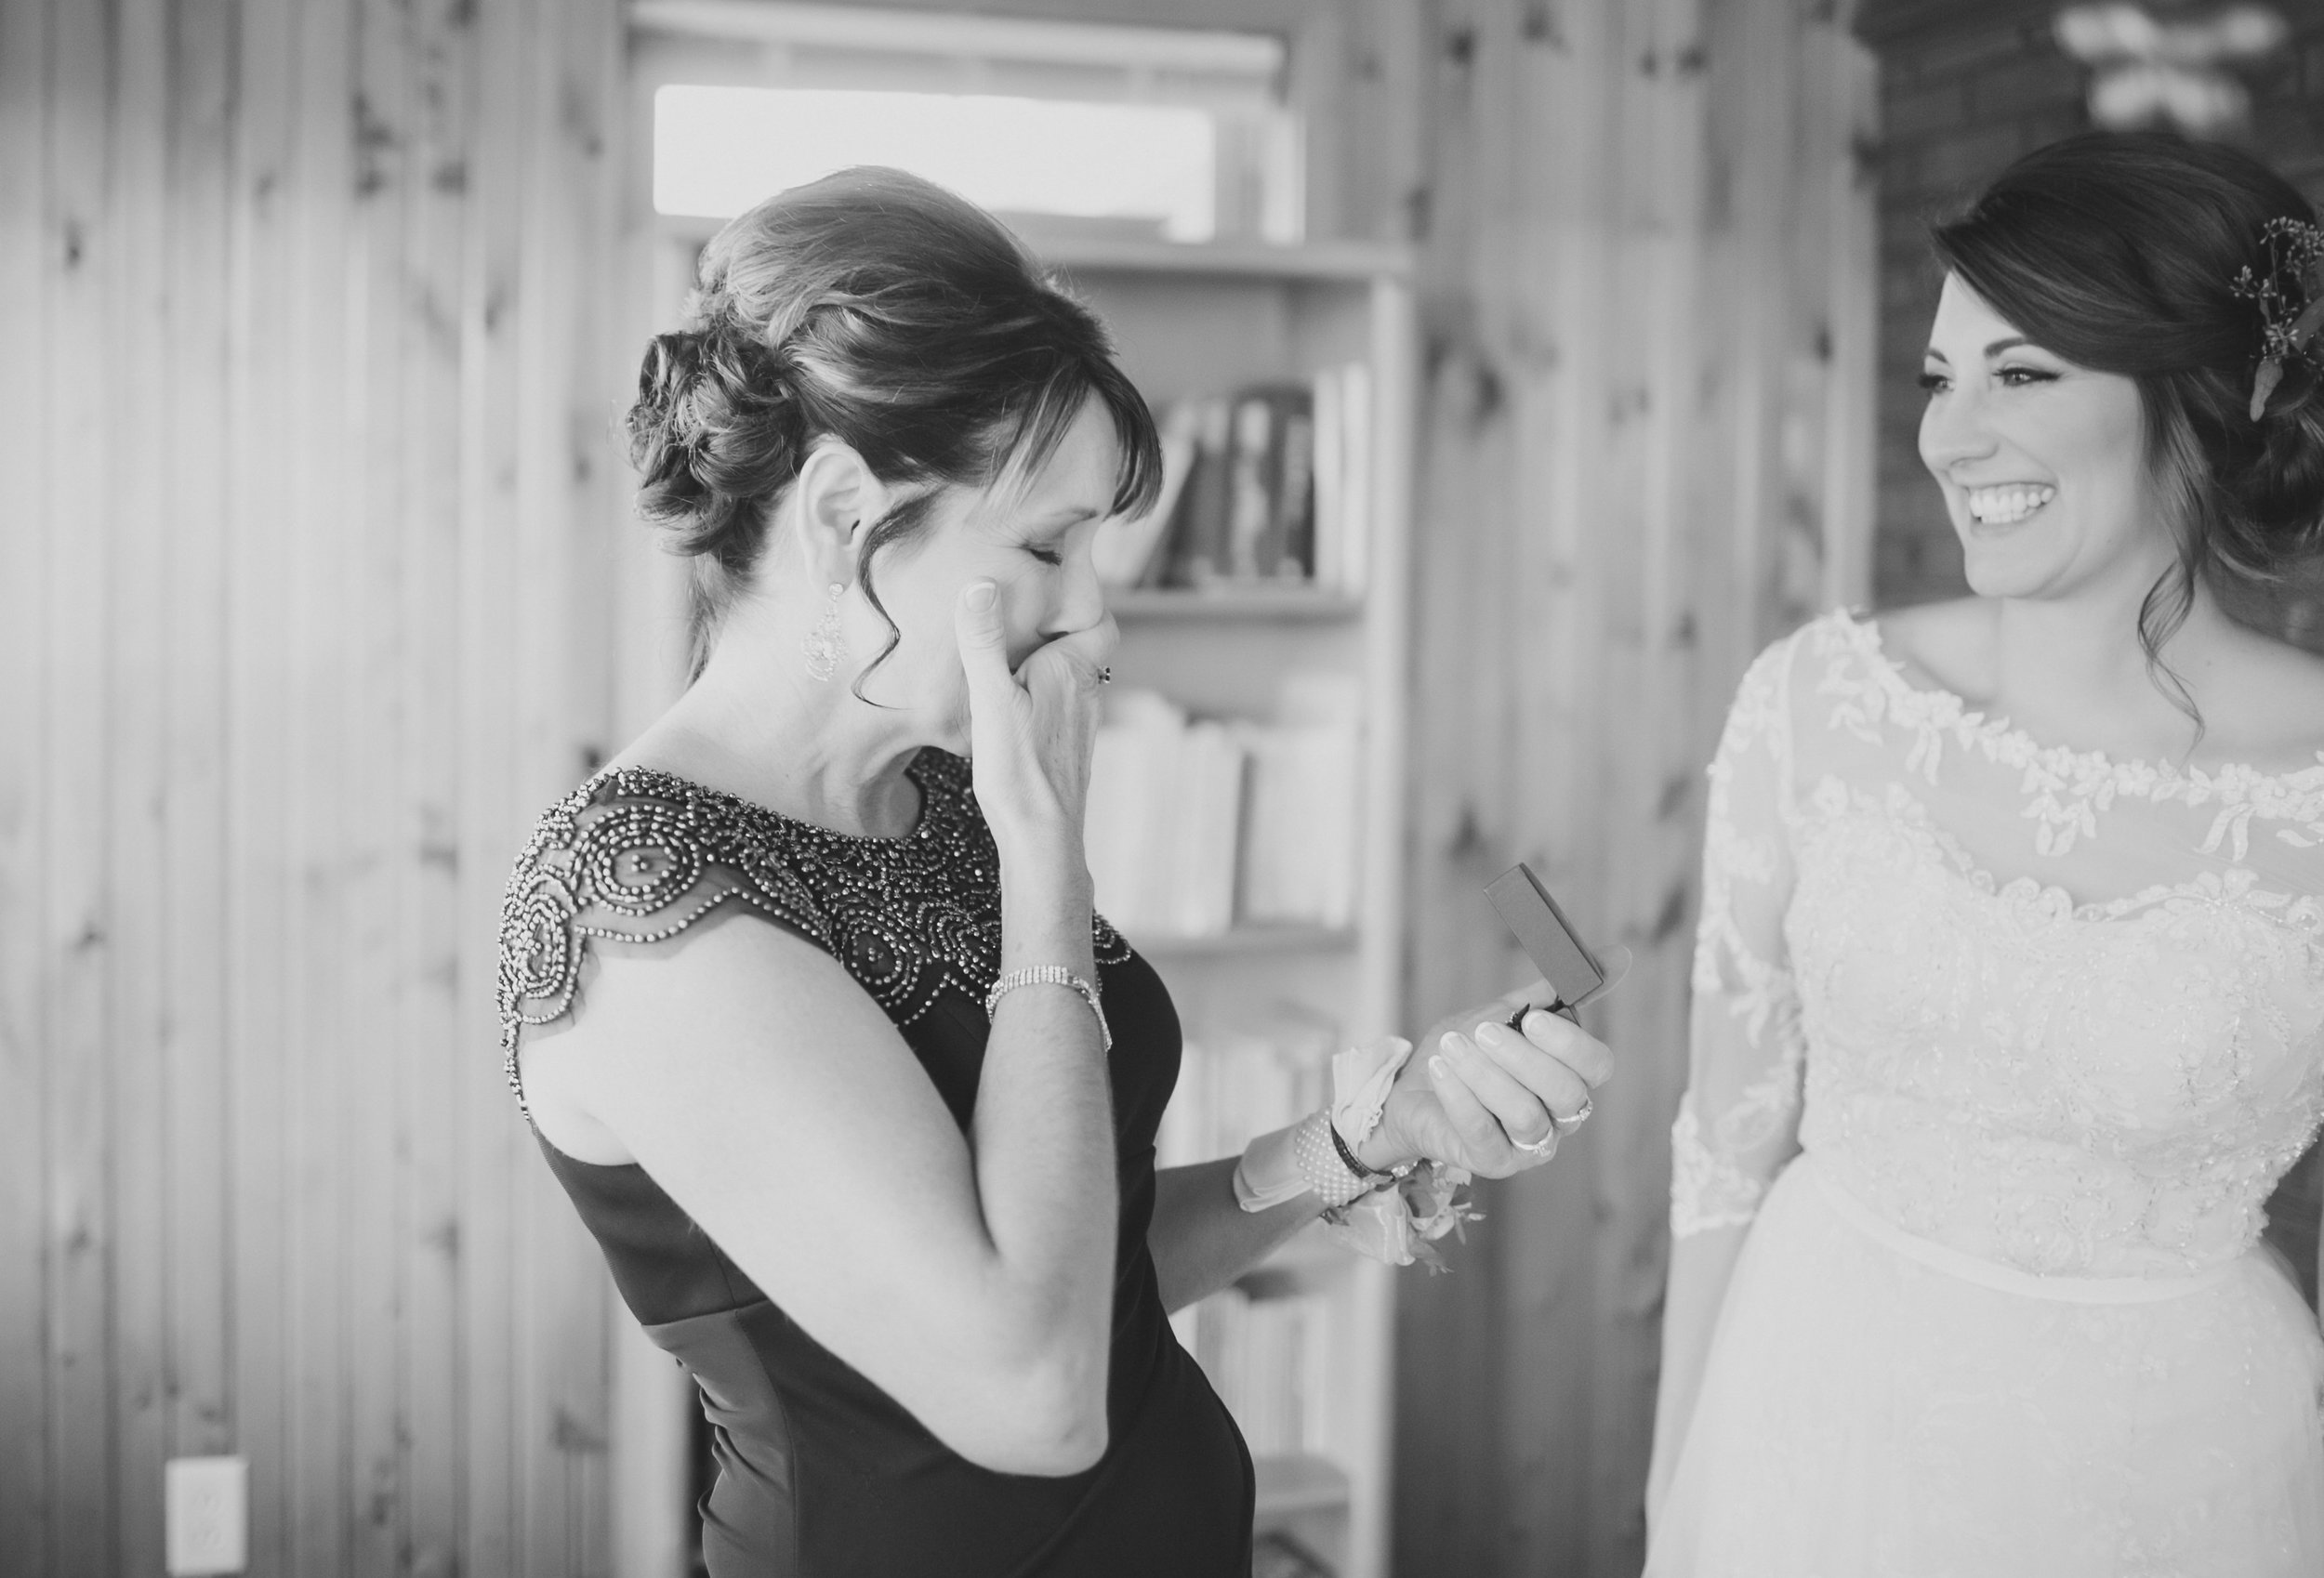 MissouriRusticWedding_StLouisWeddingPhotographer_AliciaDan_CatherineRhodesPhotography-660-Edit.jpg